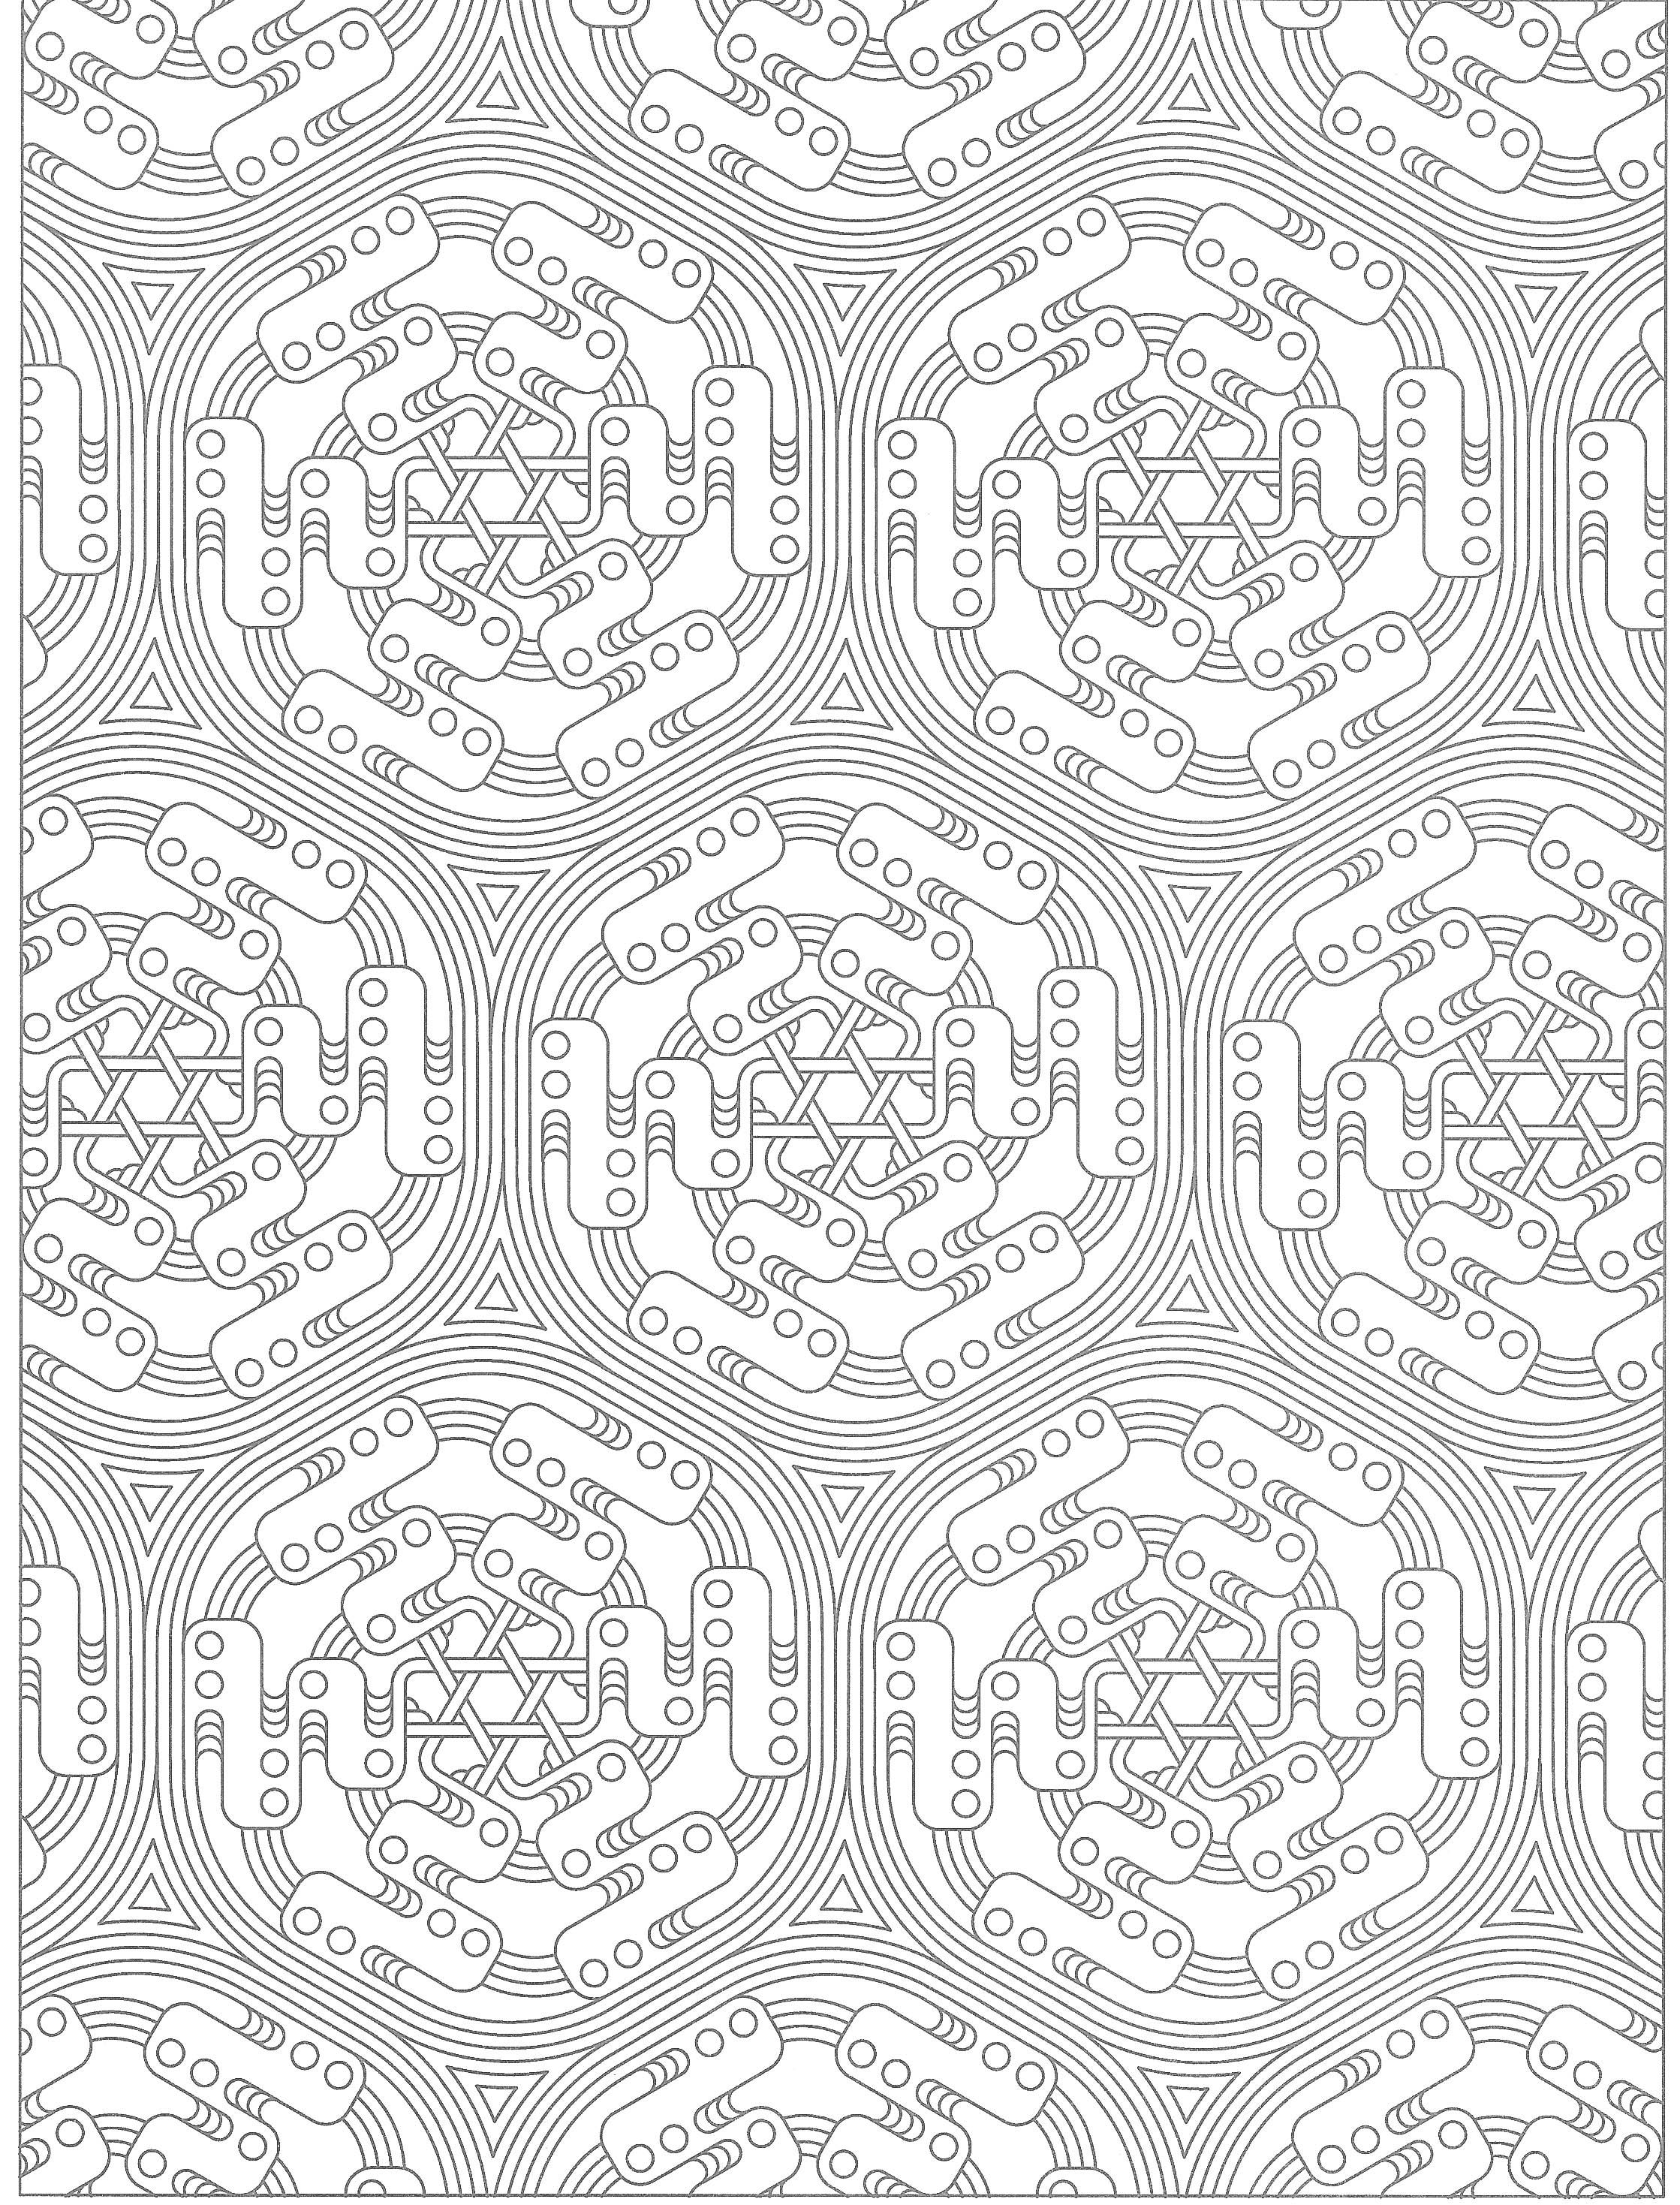 Creative Haven Tessellations Coloring Page | Zentangle patterns ...